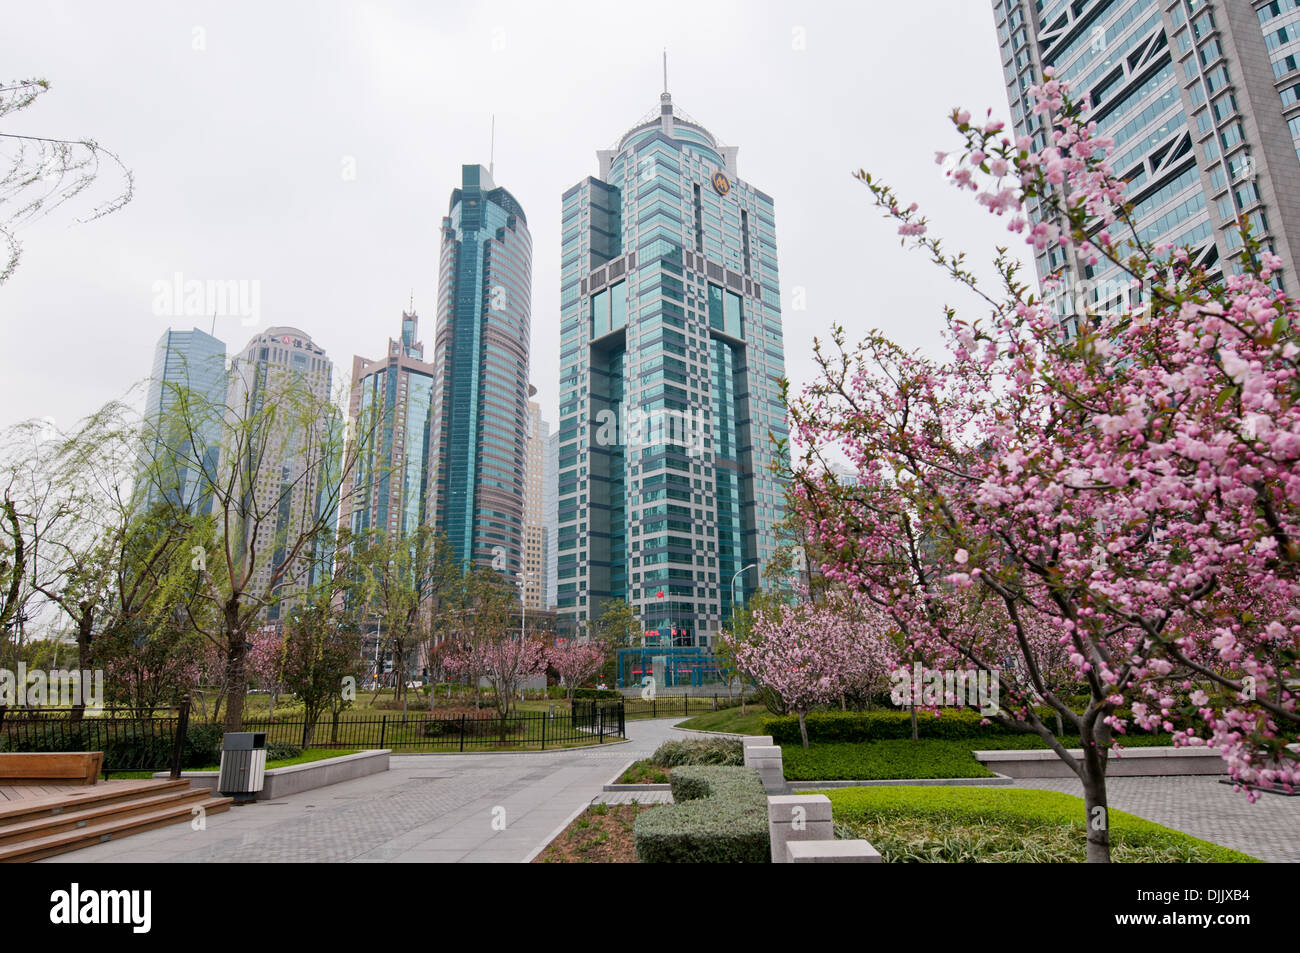 From left: One Lujiazui, Hang Seng Bank Tower, Huaneng Union Mansion, World Finance Tower and China Merchants, Pudong, Shanghai - Stock Image